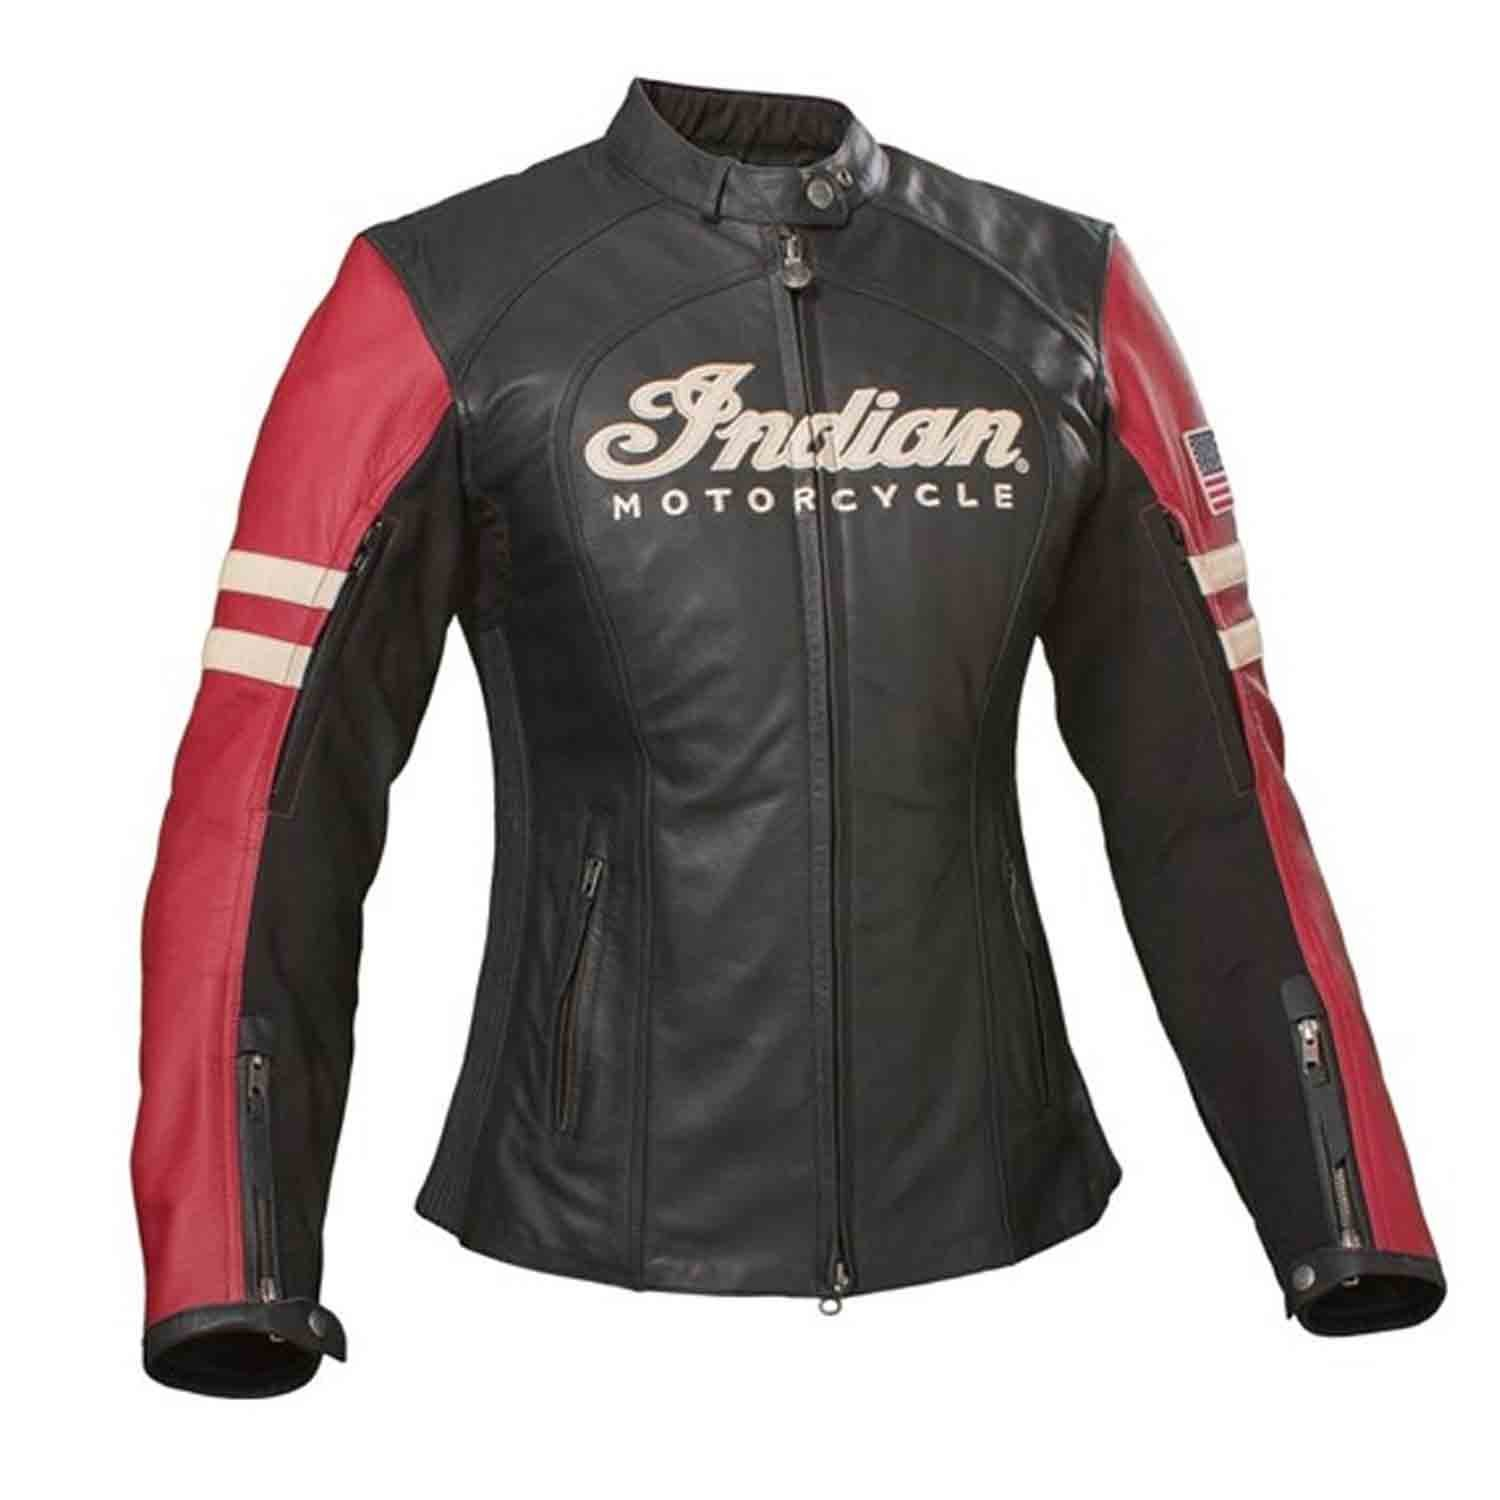 Indian Motorcycle New OEM Women's Leather Racer Riding Jacket, 3W, 286362619